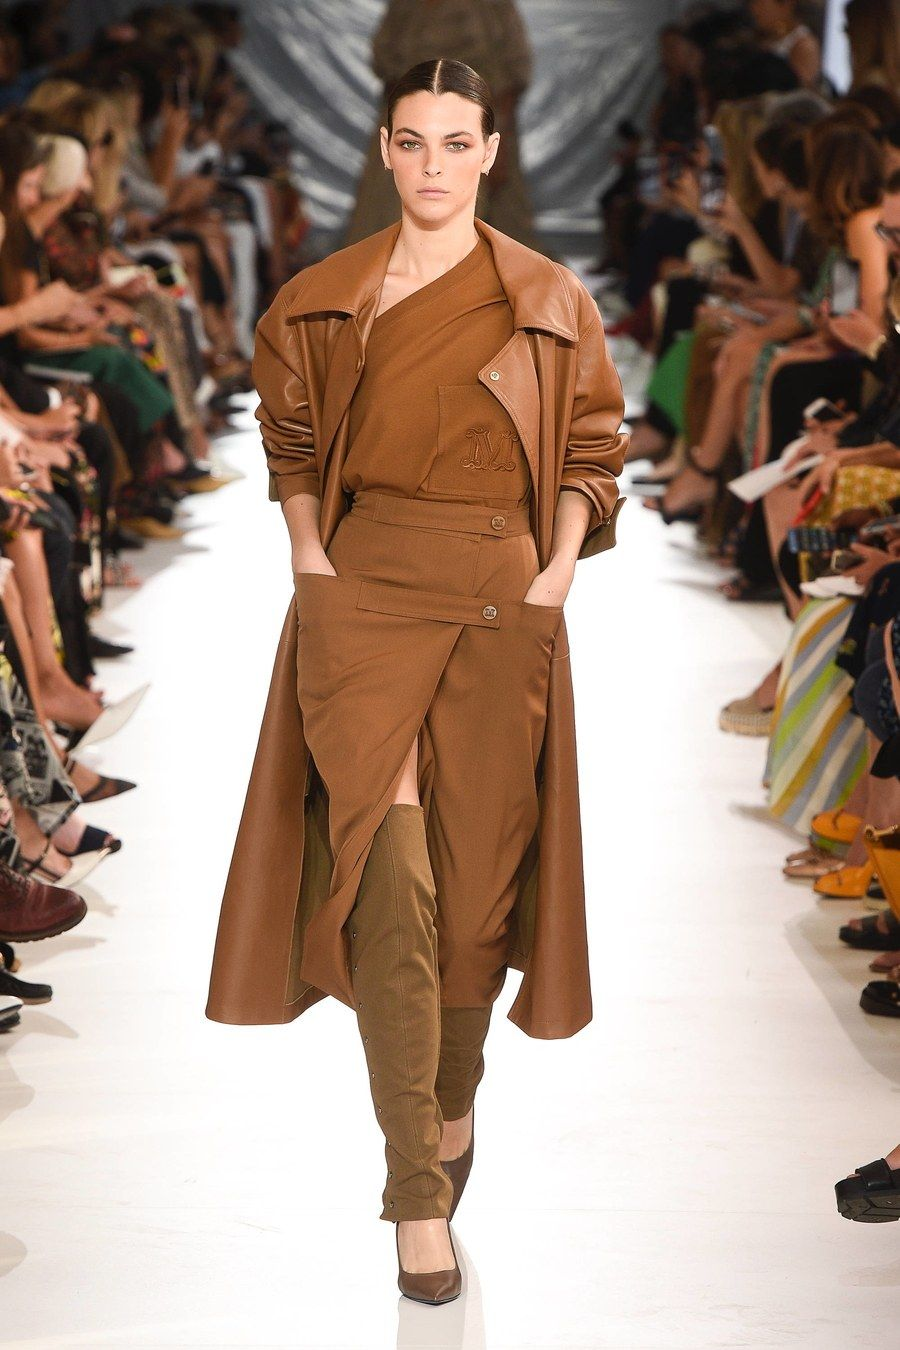 Max Mara Spring 2019 Ready-to-Wear Fashion Show  5bacacd26a7